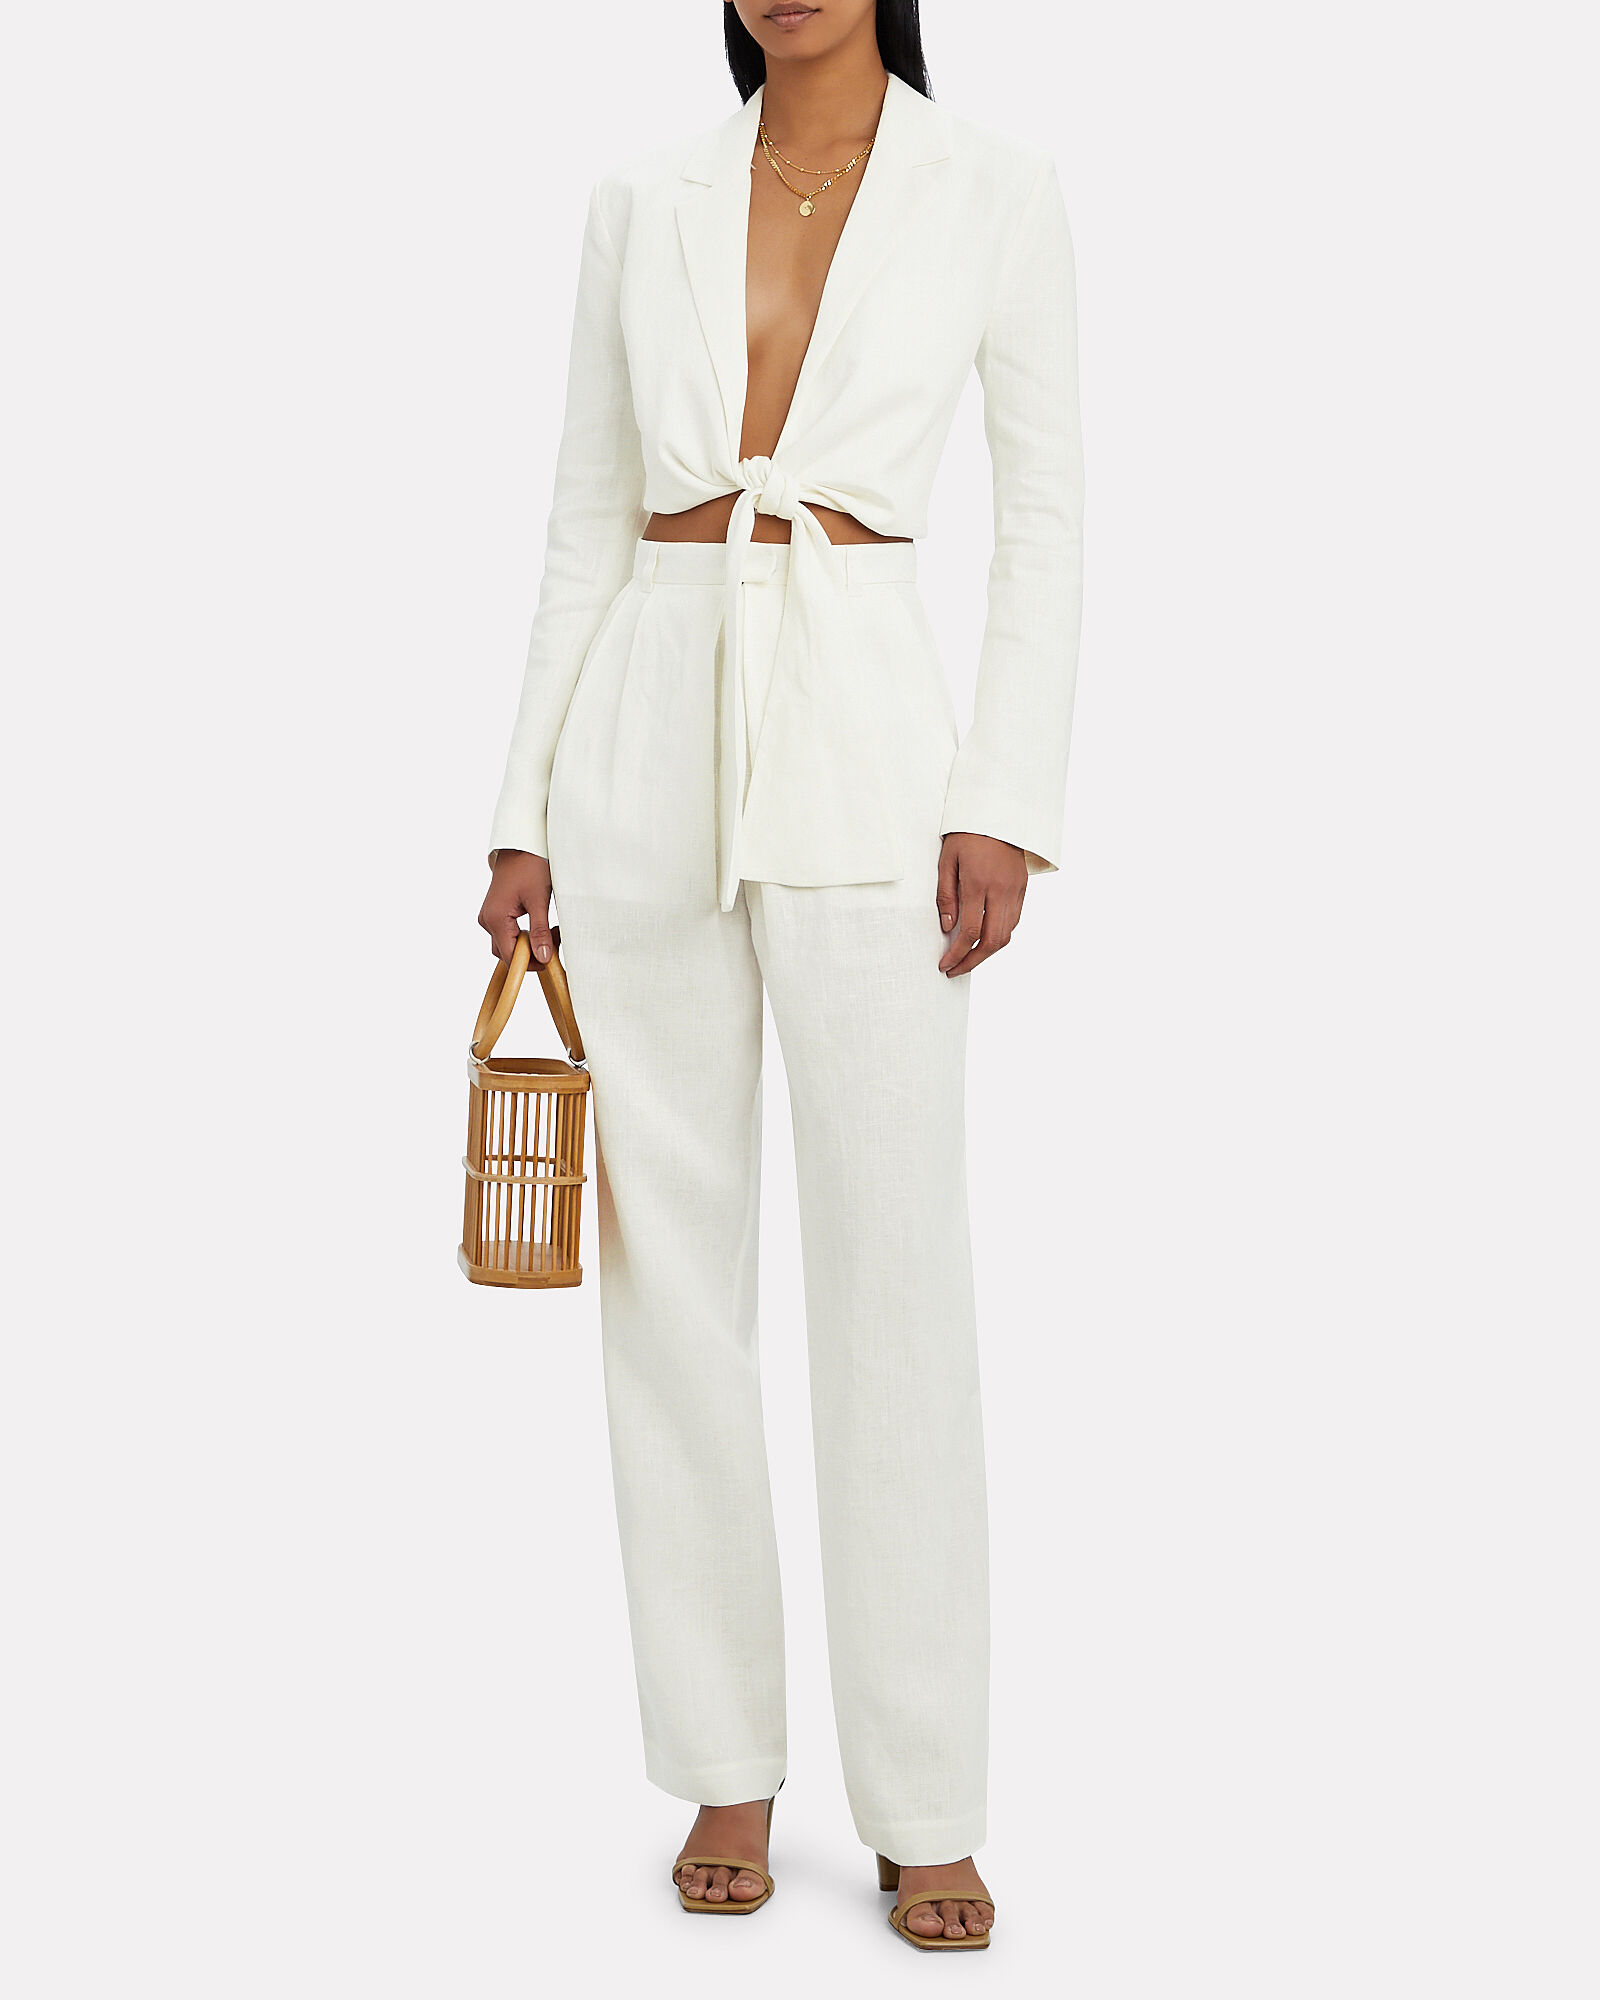 Catalina Cropped Tie-Front Blazer, WHITE, hi-res